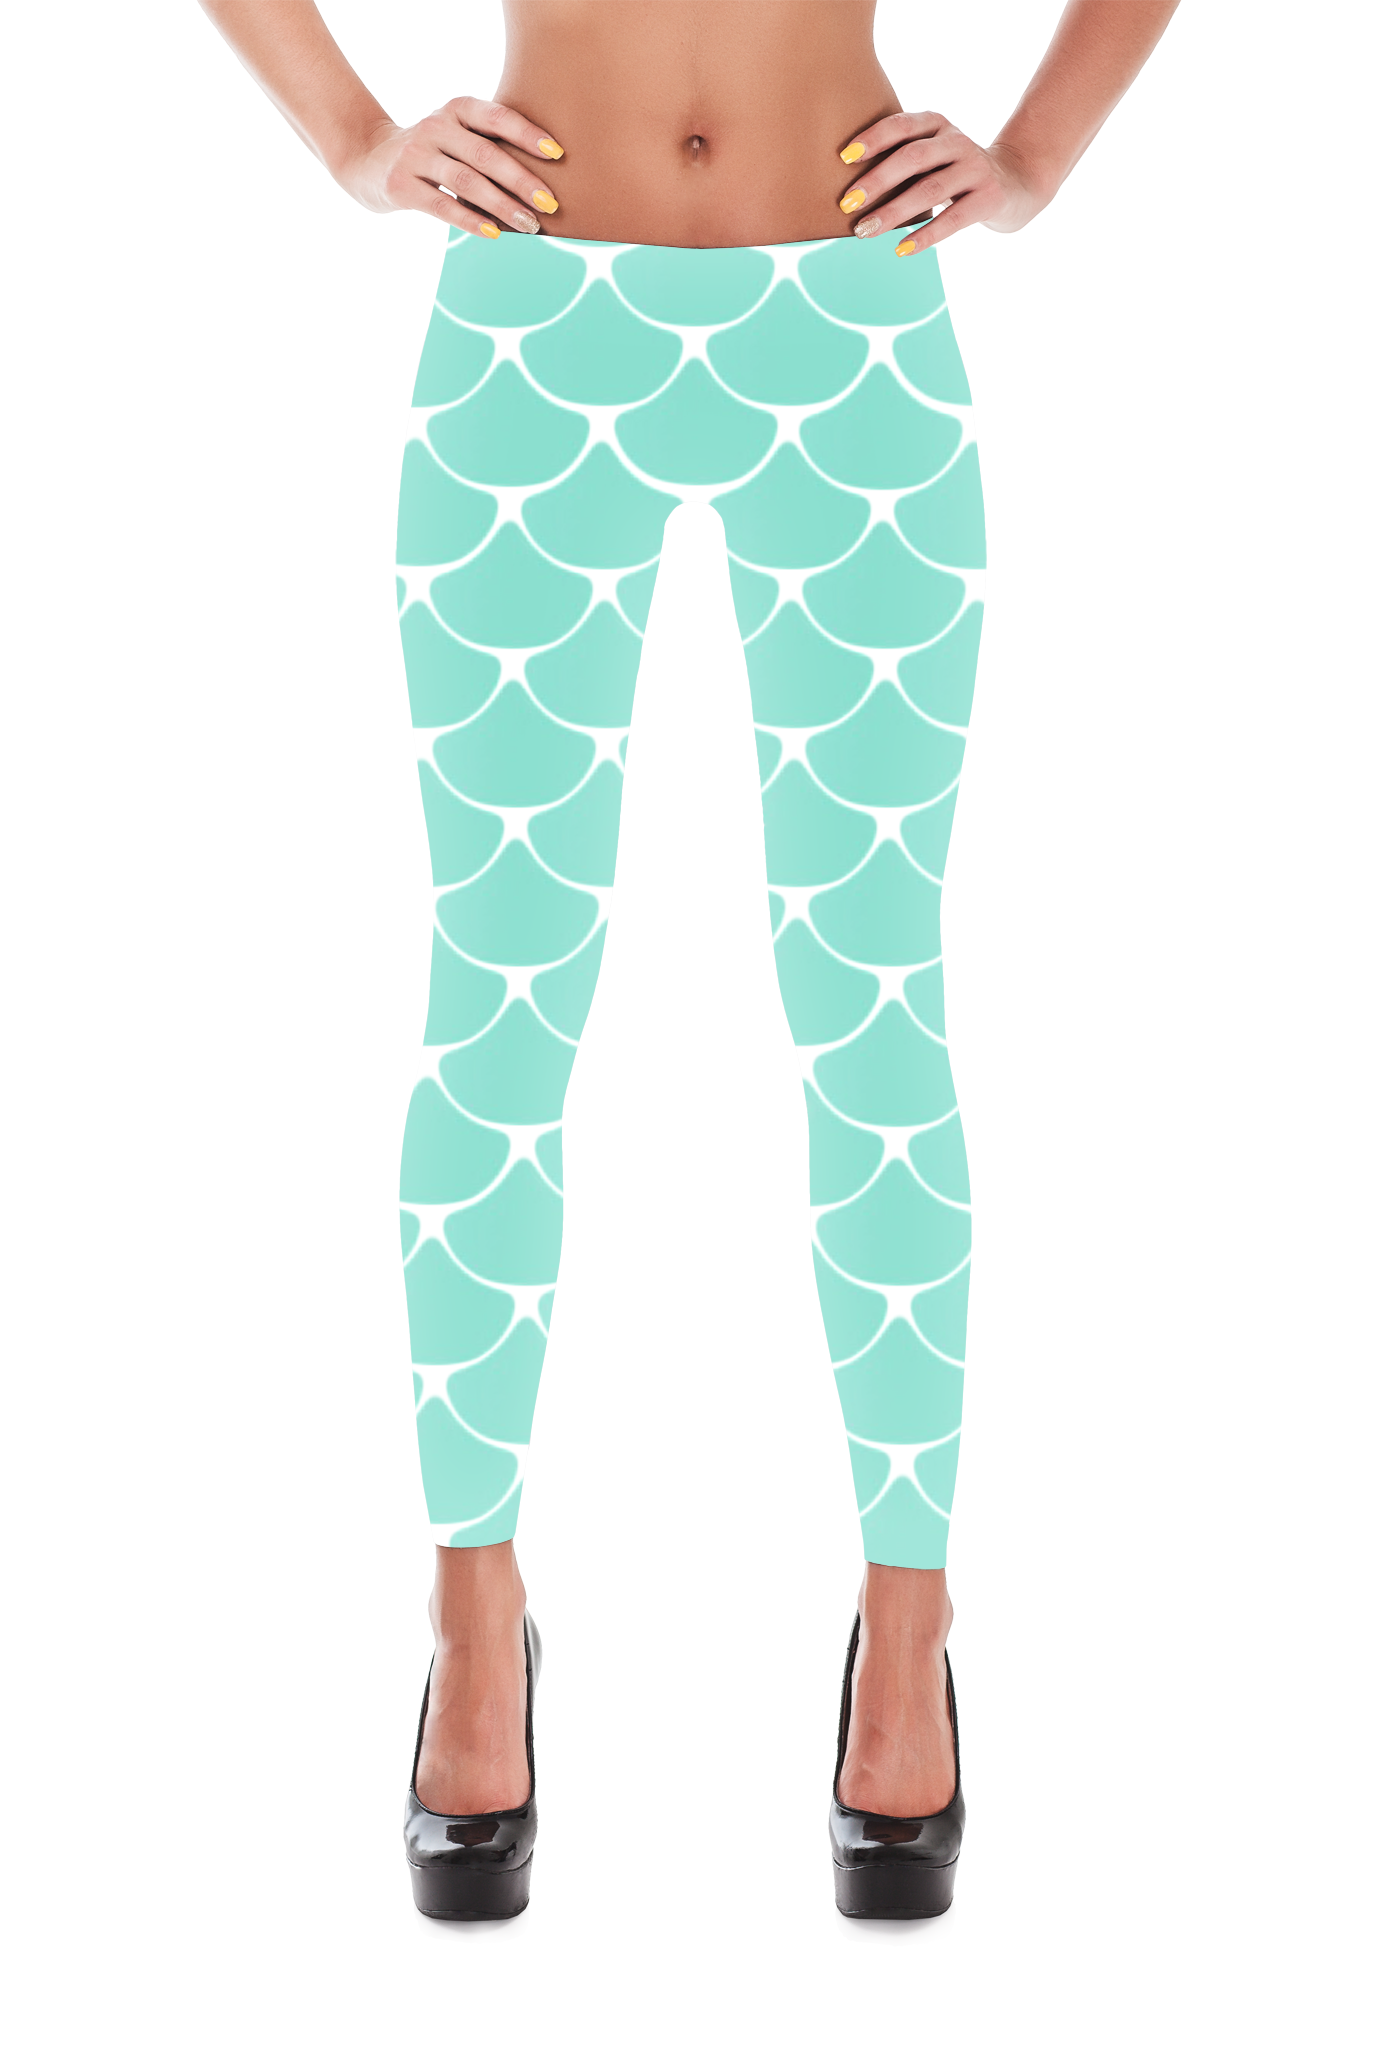 ecbf1123cbaad Blue Mermaid fish scale leggings. Shiny, durable and hot. These  polyester/spandex leggings will never lose their stretch and provide that  support and ...